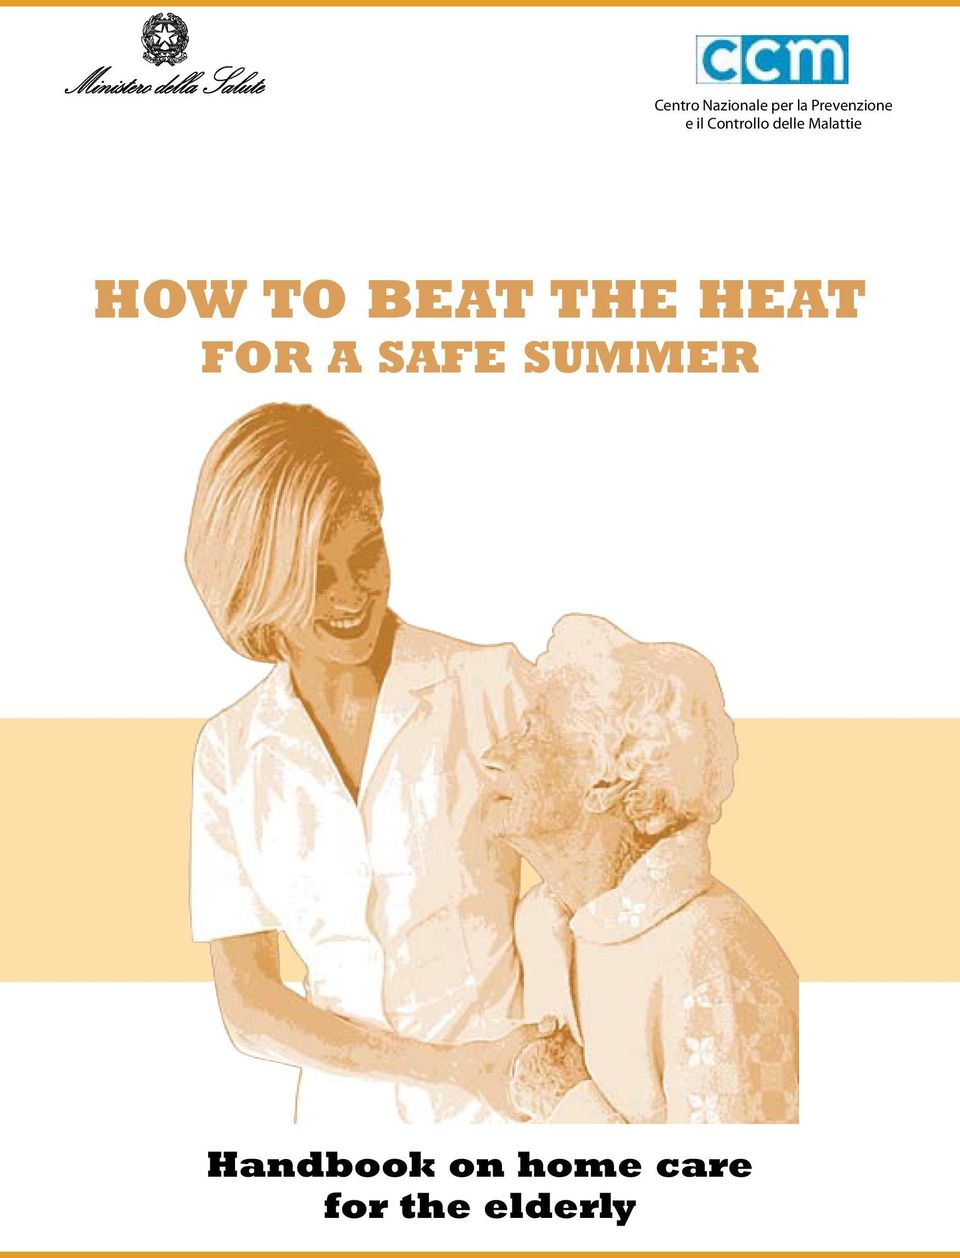 TO BEAT THE HEAT FOR A SAFE SUMMER